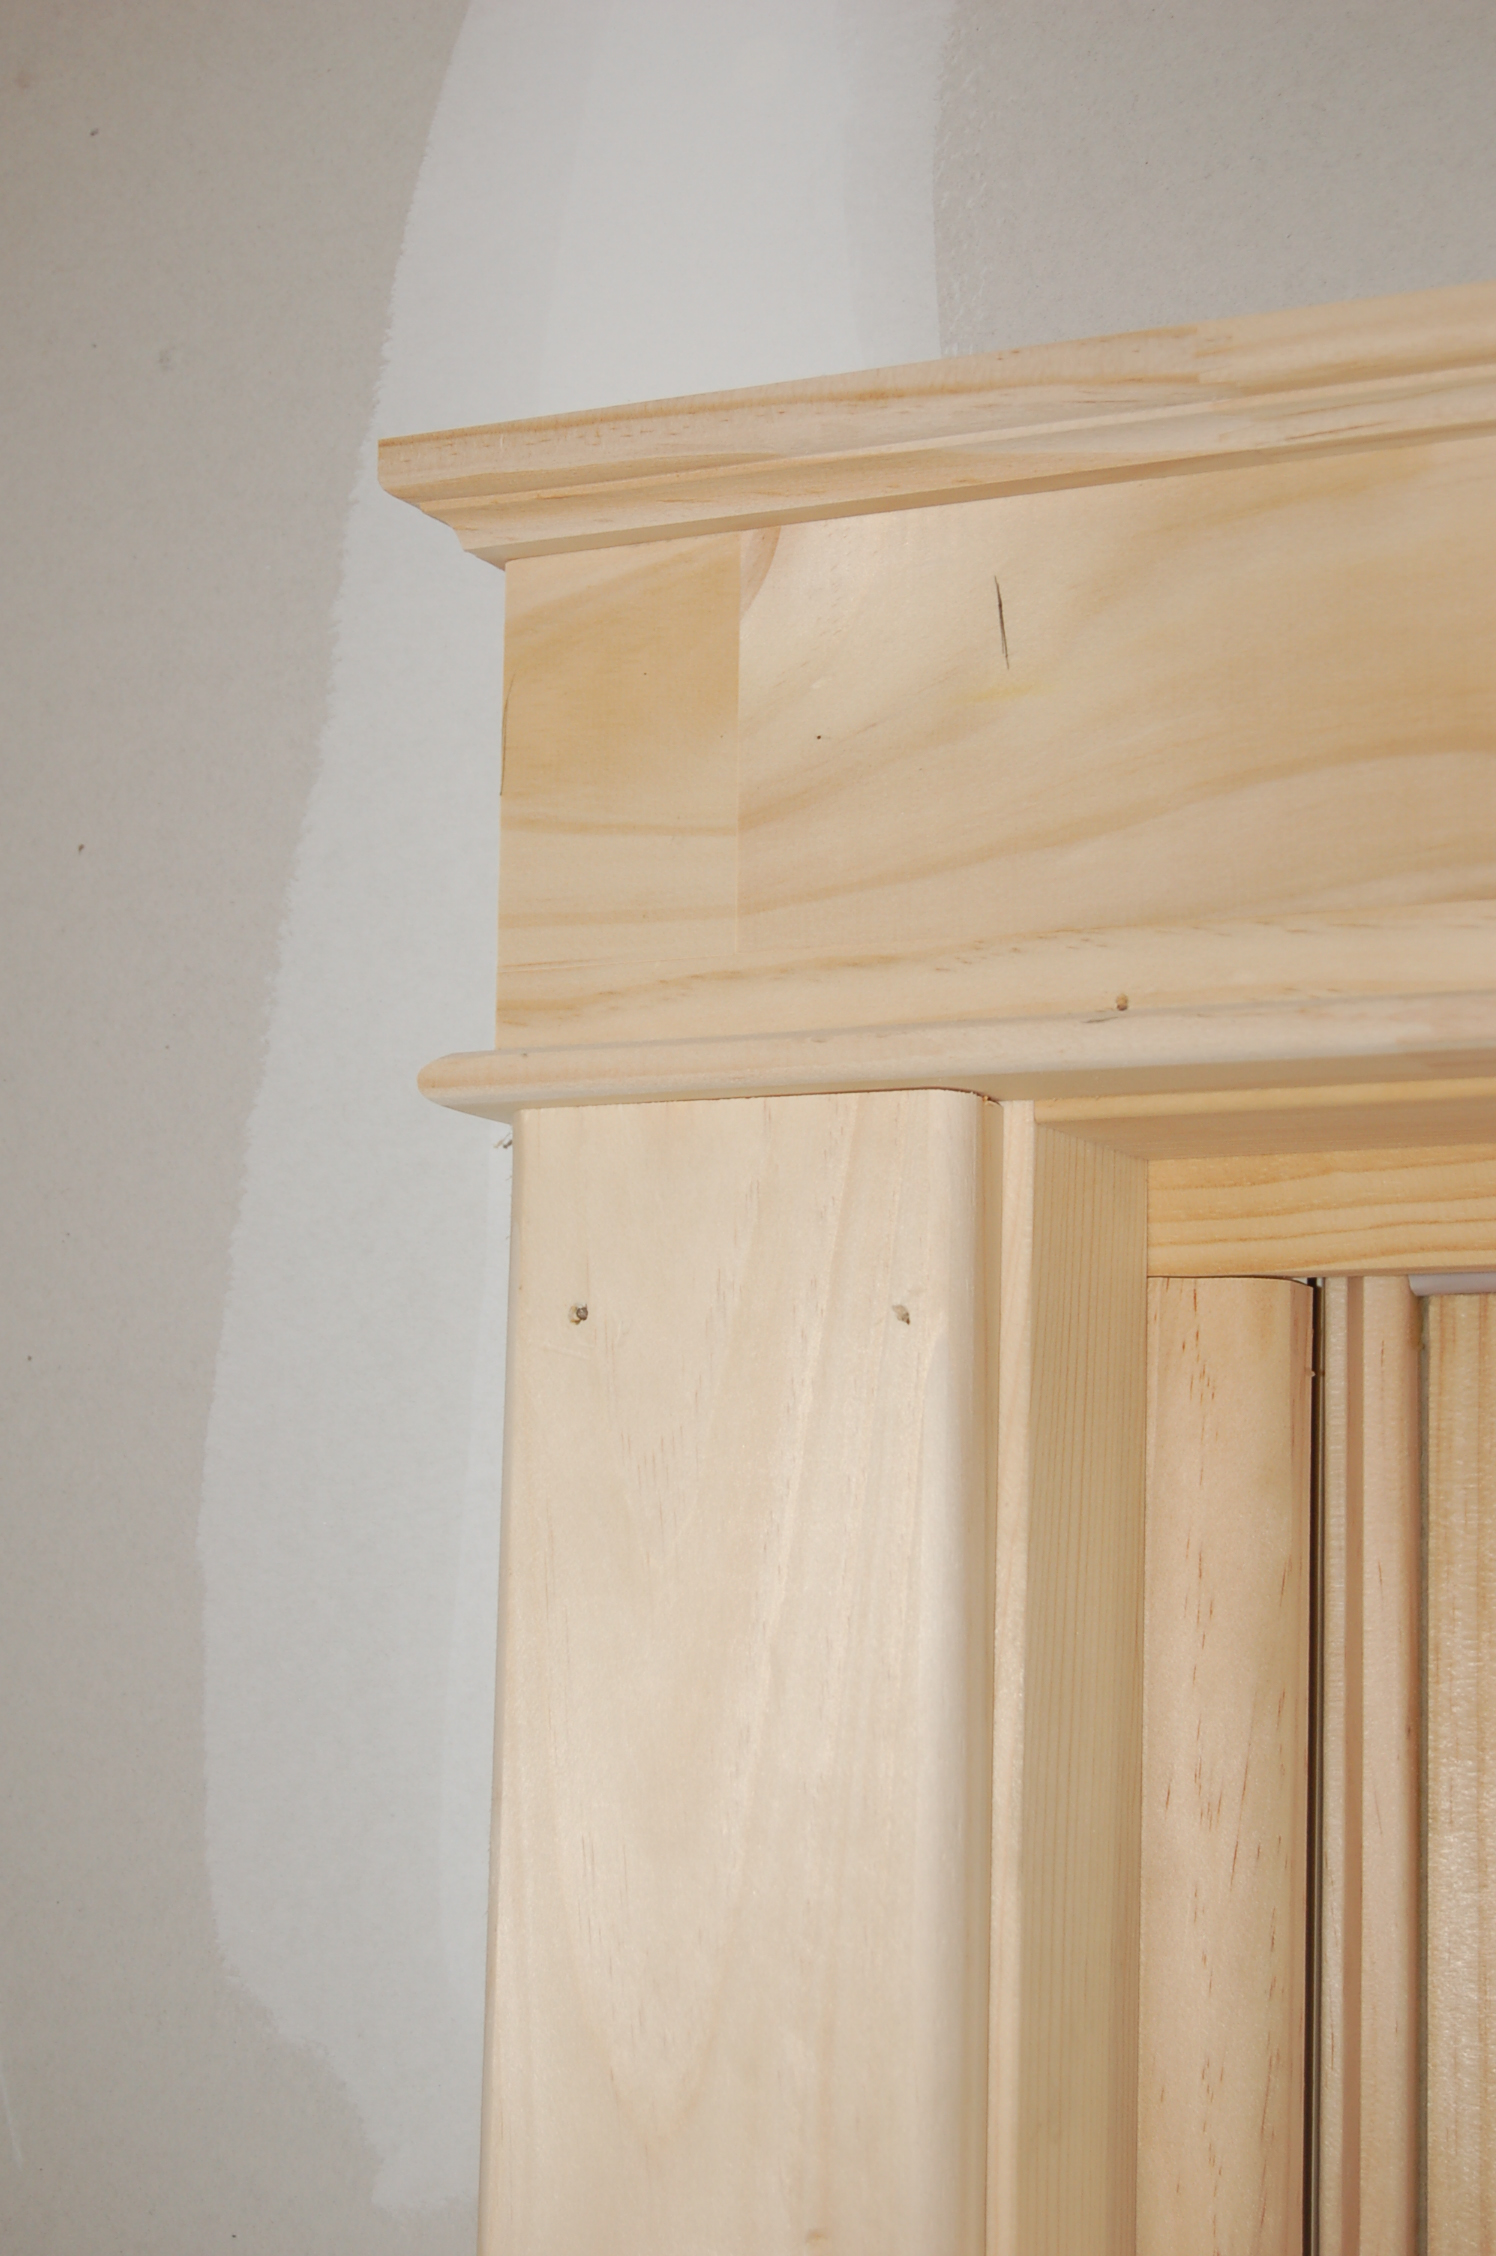 1000 images about molding and door casing ideas on for Mission style moulding